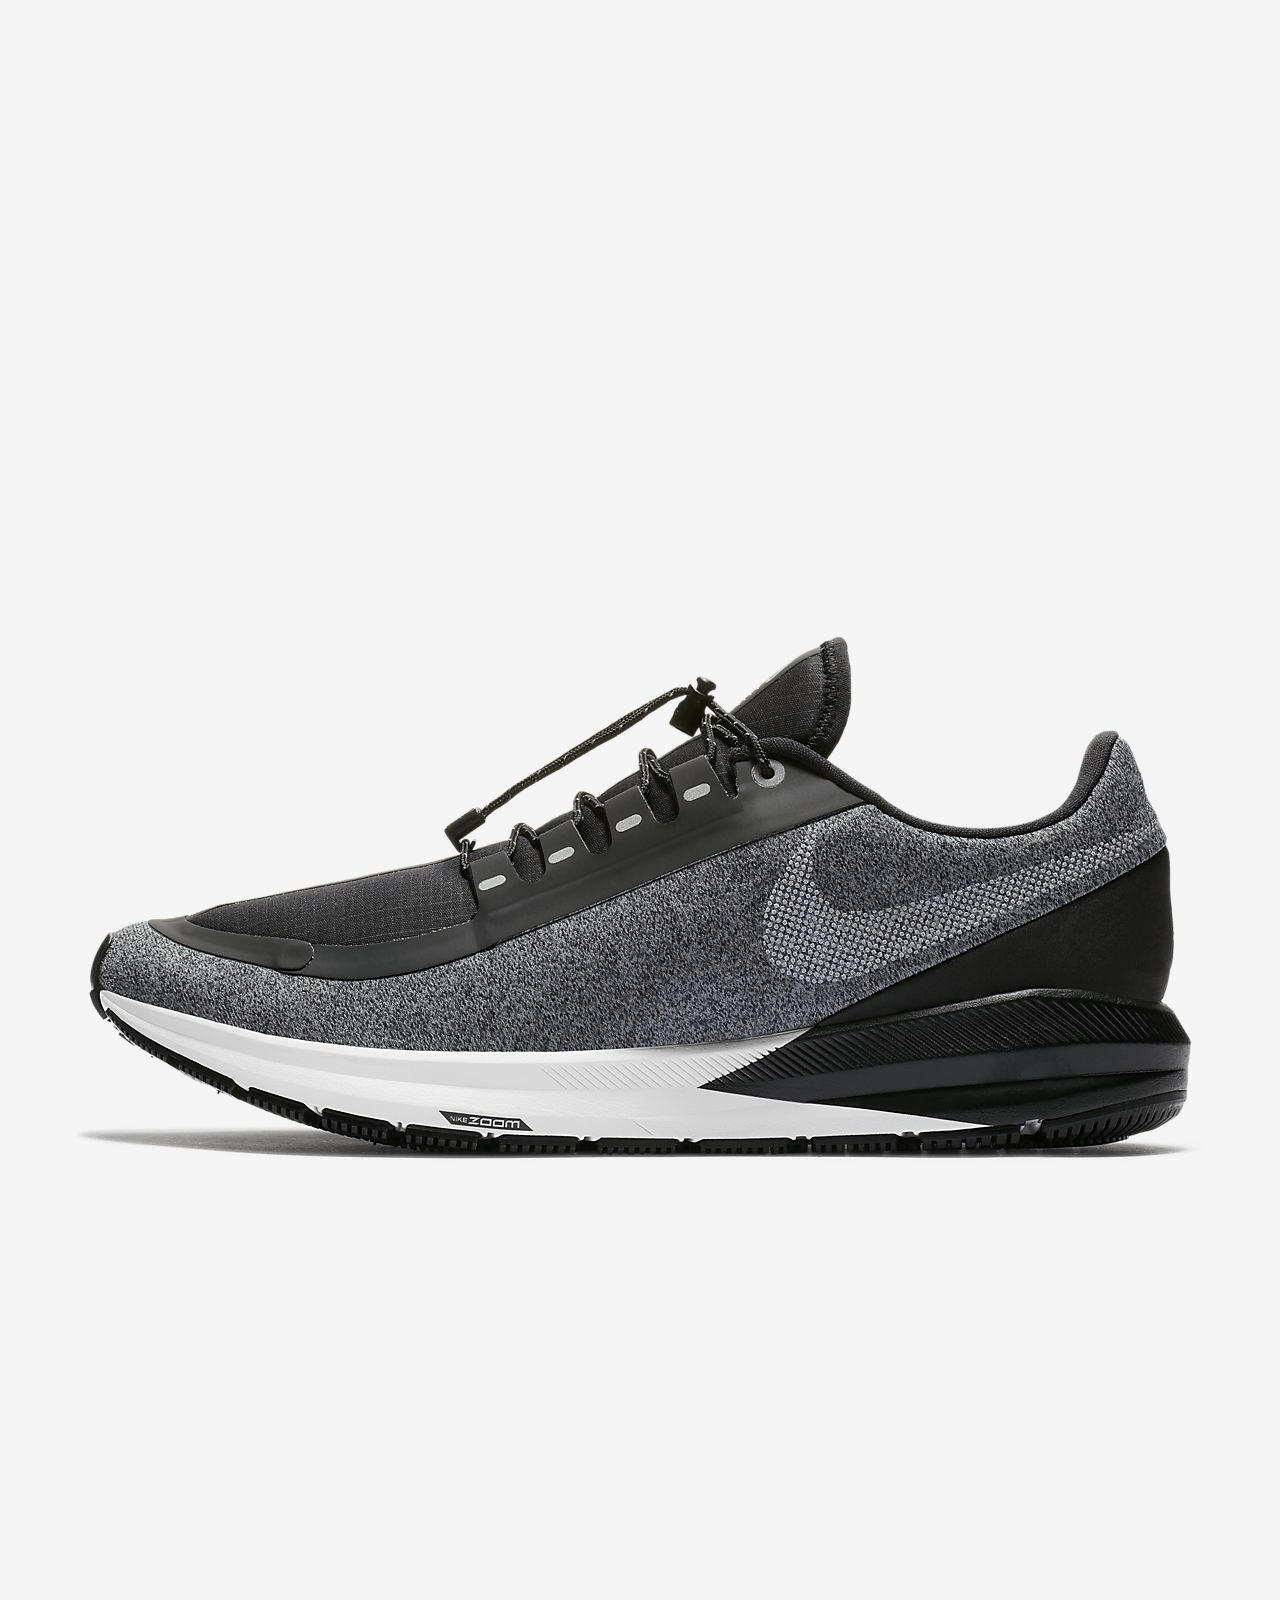 Löparsko Nike Air Zoom Structure 22 Shield Water-Repellent för män